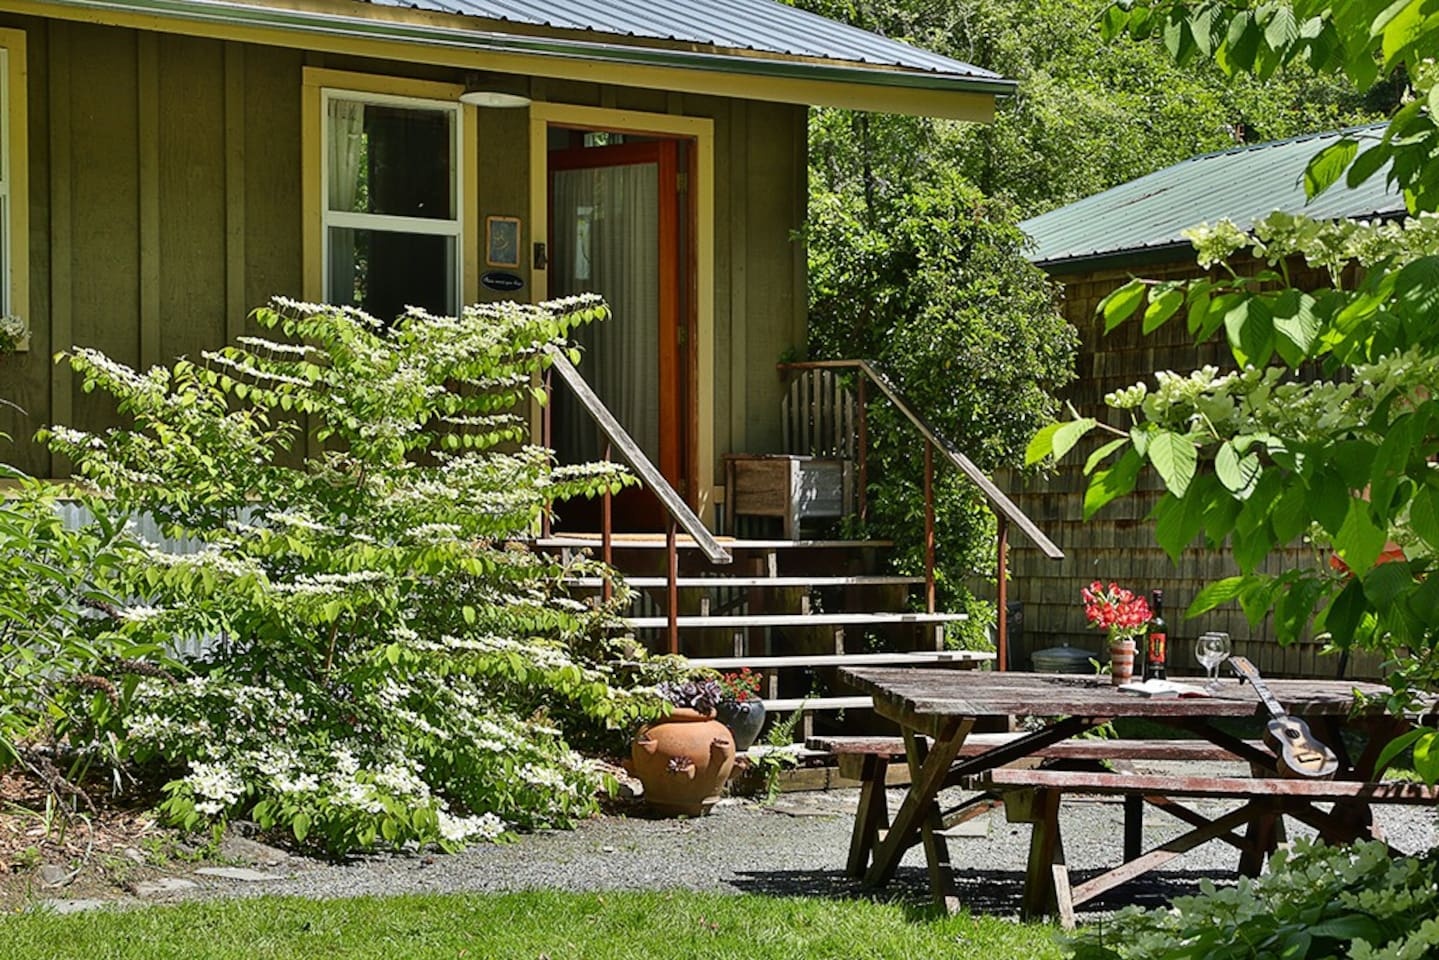 Enjoy alone time in a private county Cabin. The Cabin is a short drive to nearby towns, vineyards and restaurants.